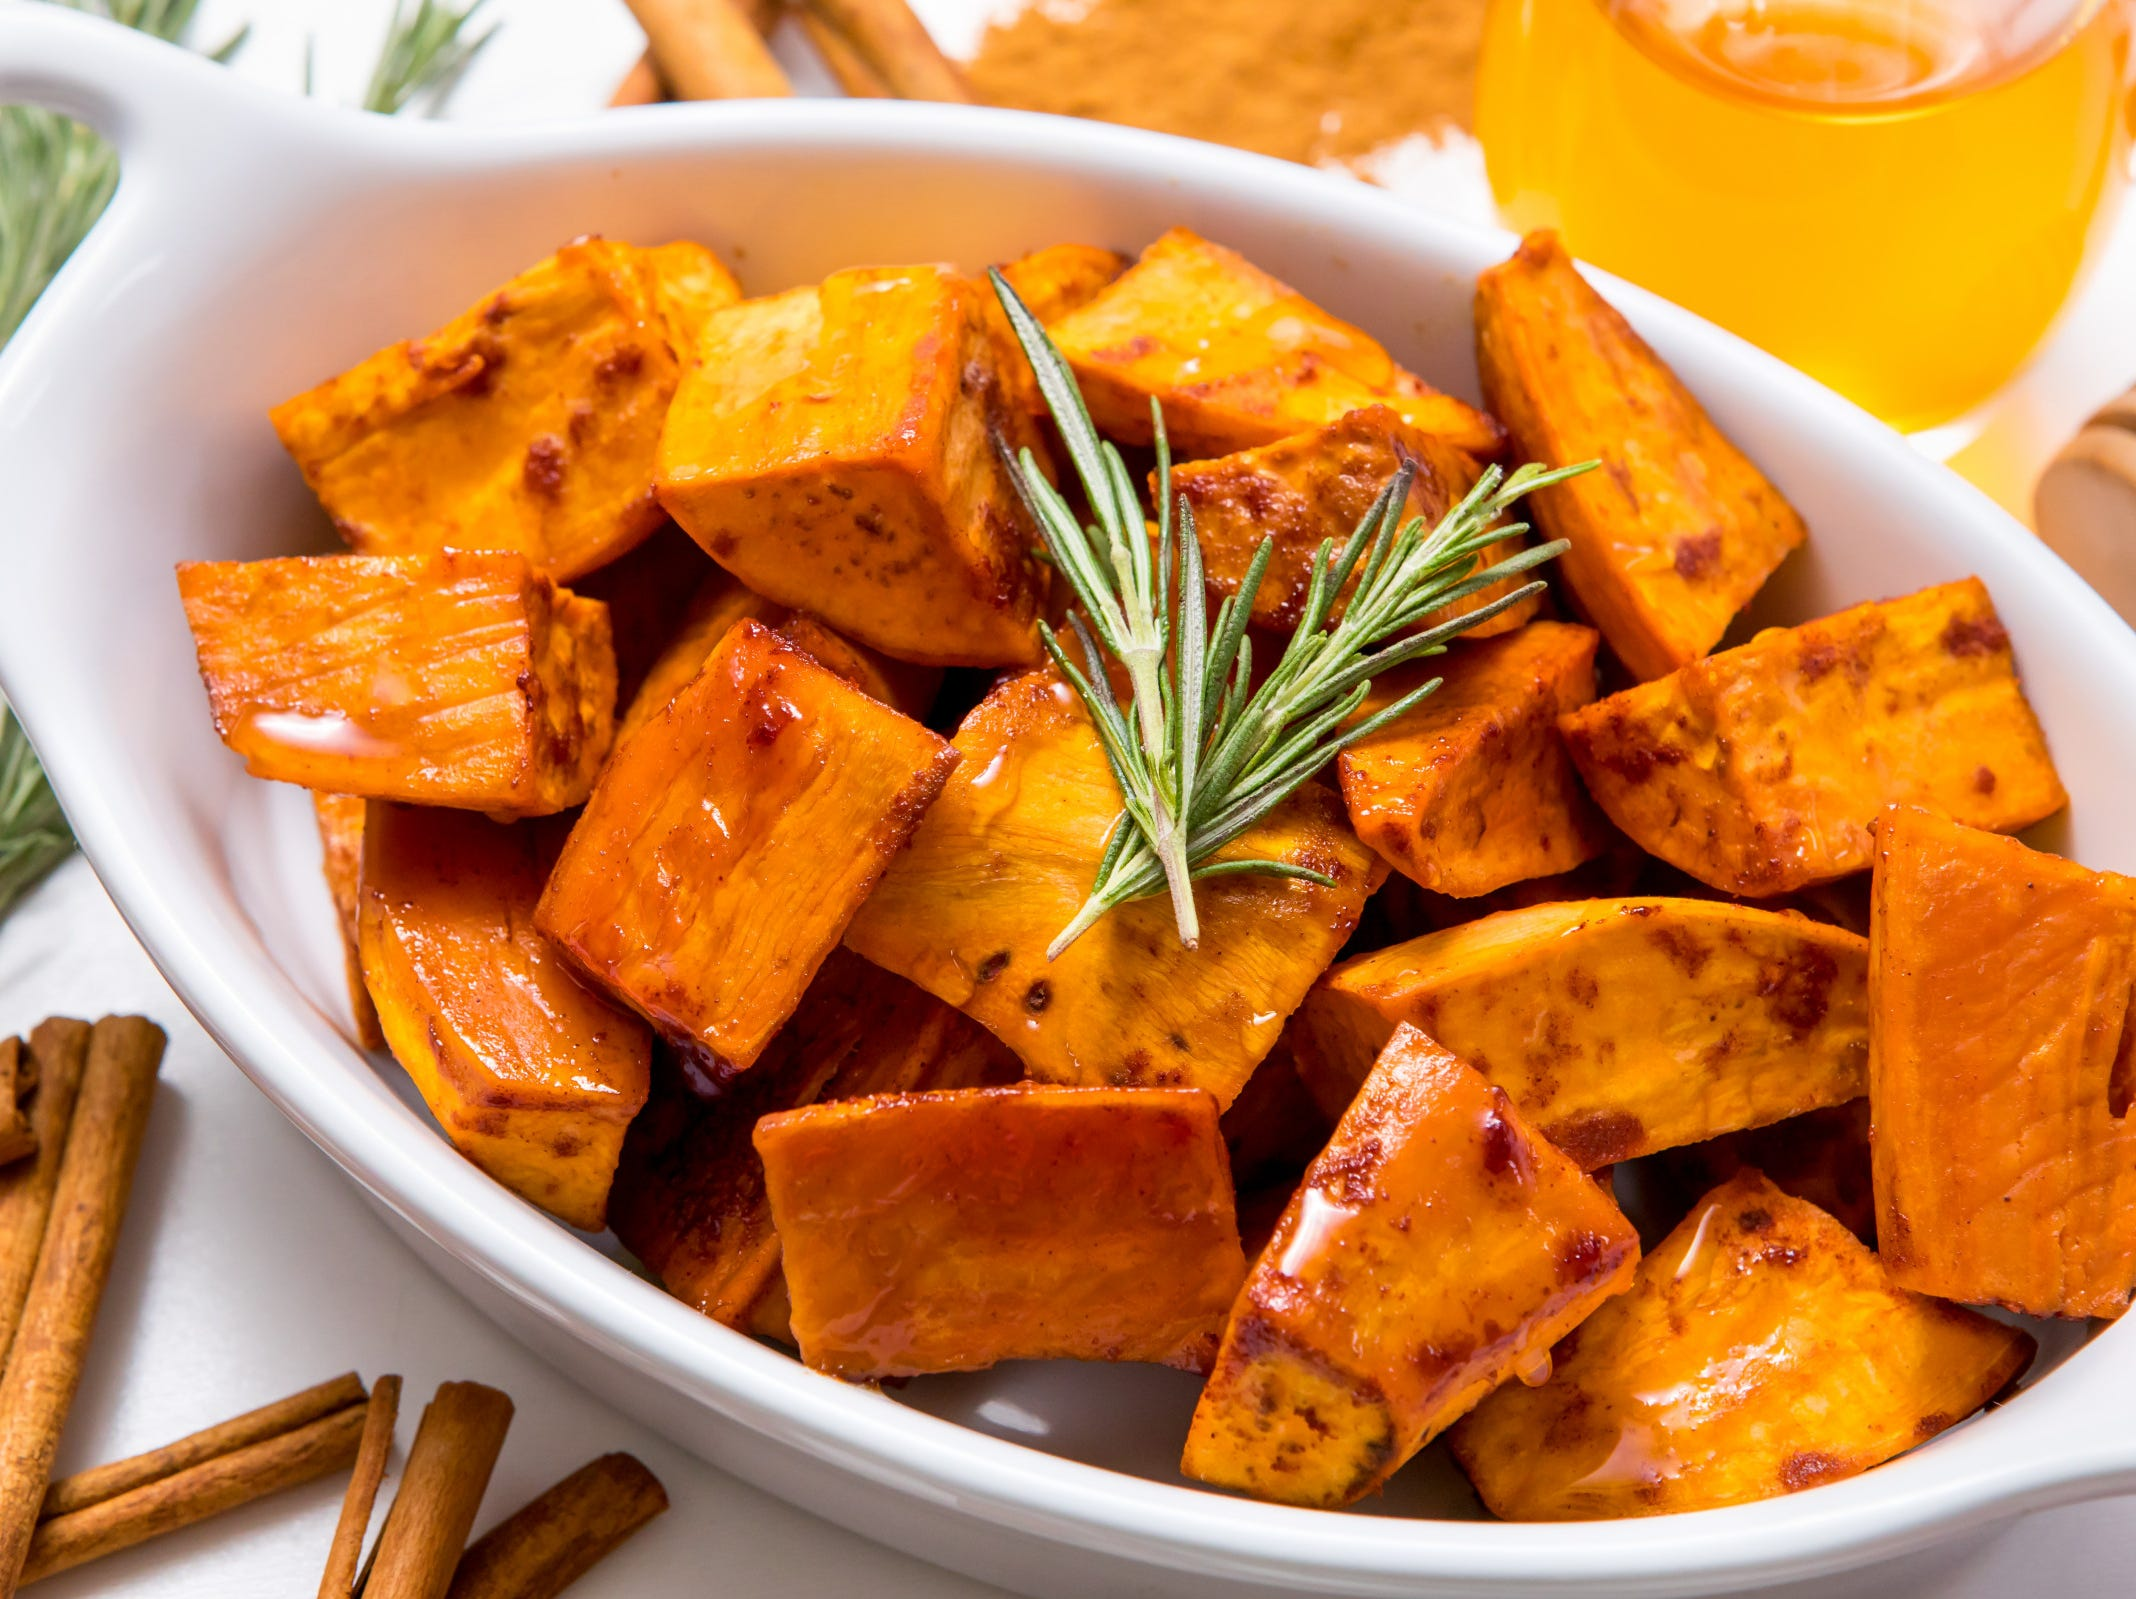 Need a knee-weakening holiday side dish that can deliciously double as a dessert? Our honey cinnamon roasted sweet potatoes, adapted from a recipe by Rasa Malaysia, will make your family and friends fight over who gets the first and last bites. Best yet, this sweet potato recipe is so easy, you can serve it as a special holiday side dish or as the favorite part of your usual weeknight meals.